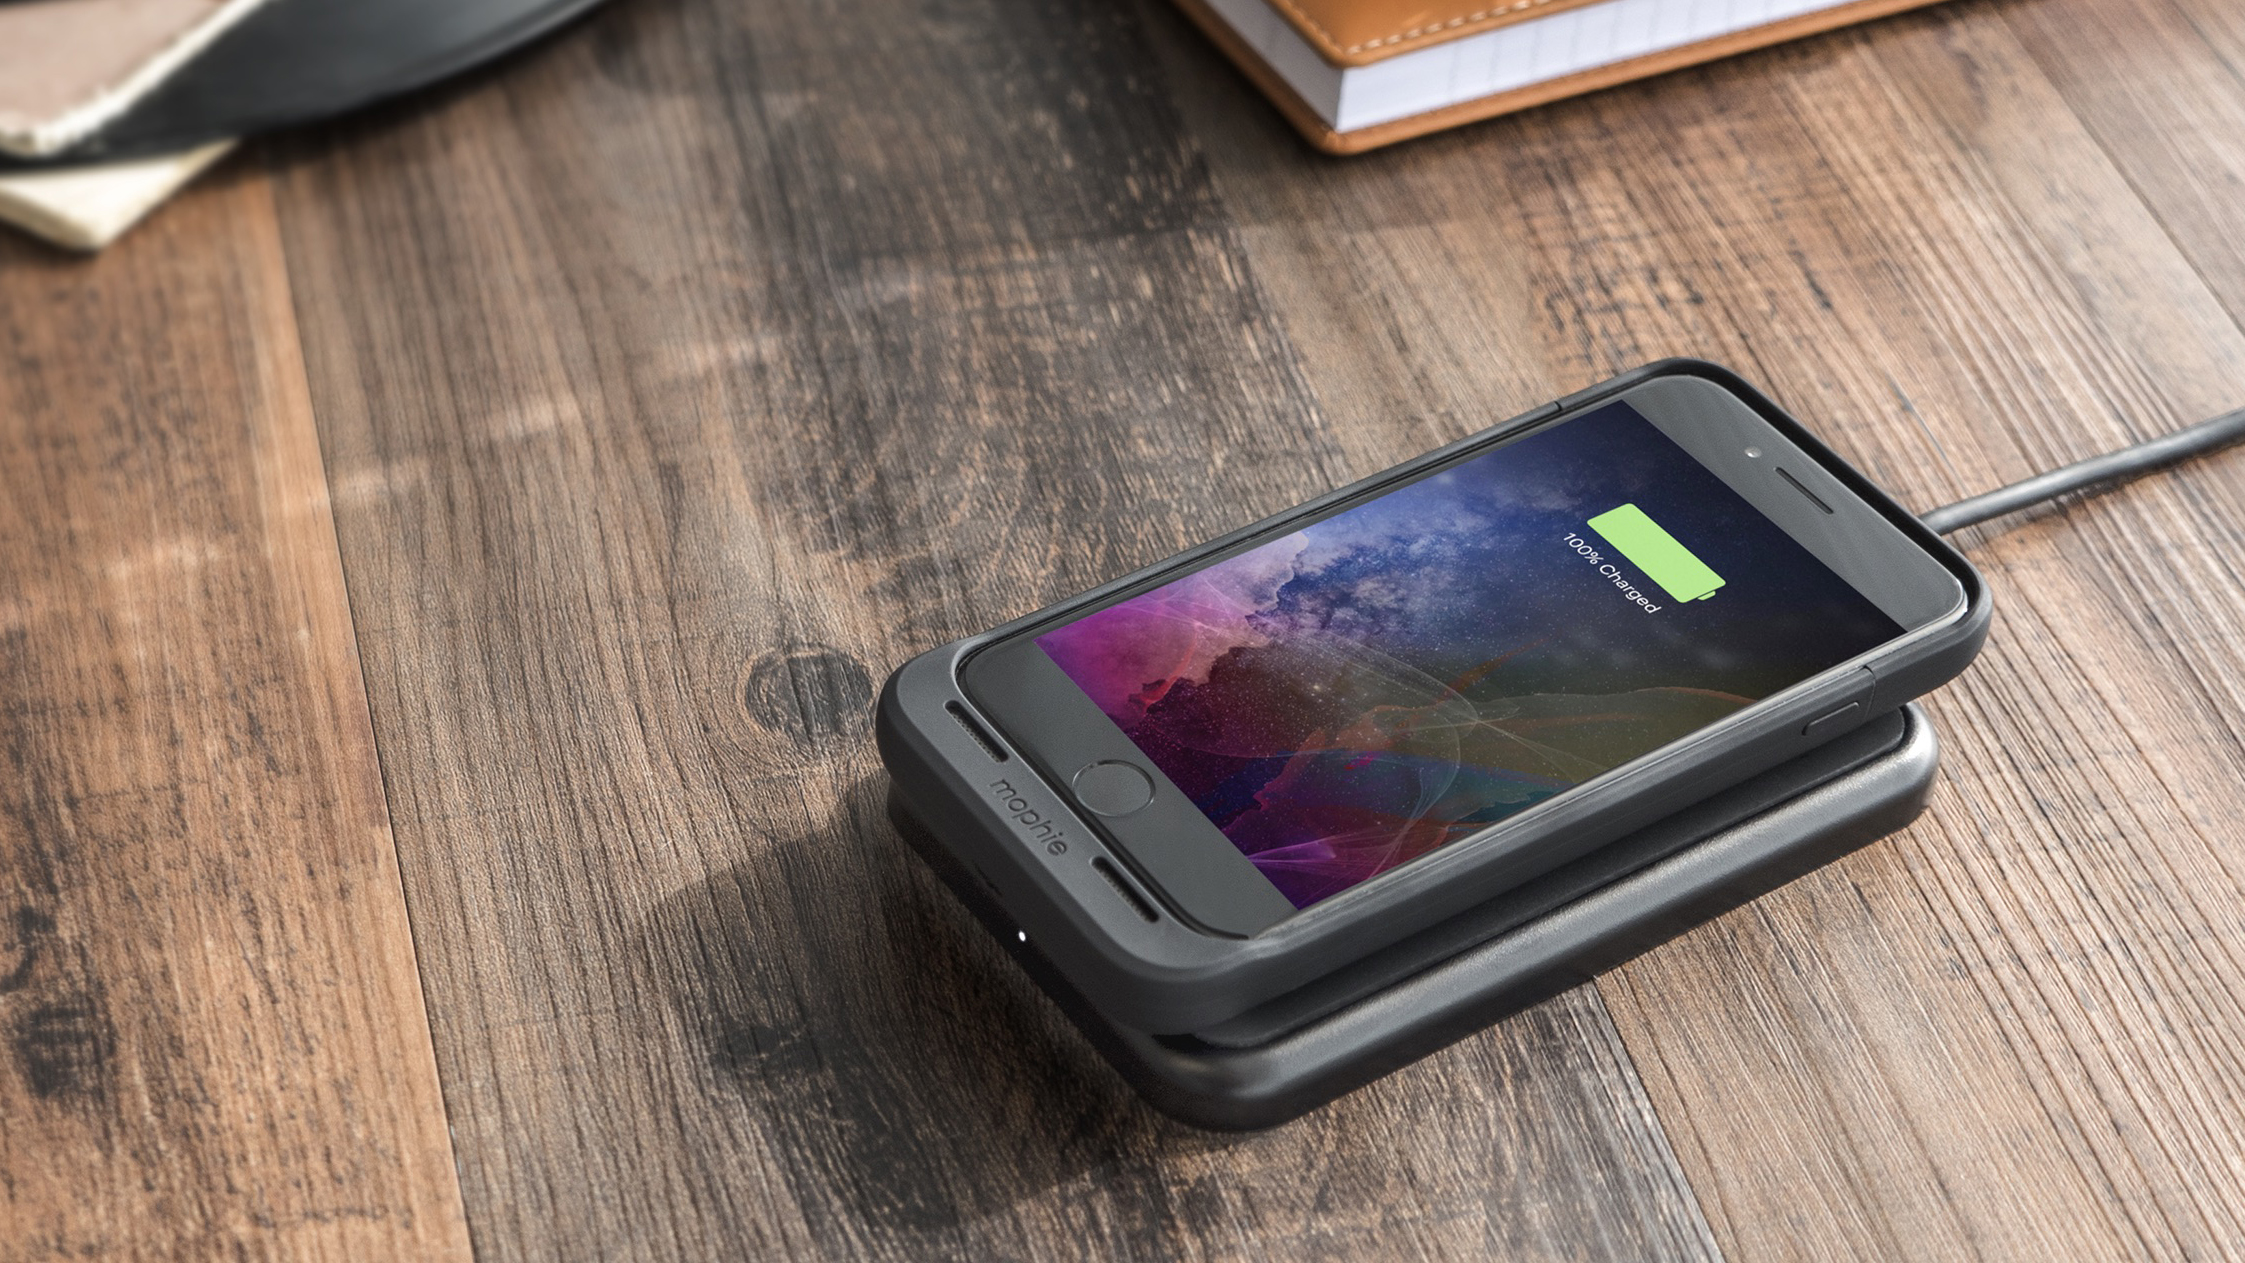 best service f55d8 c2f44 Your iPhone 7 can now use wireless charging with this Mophie battery ...